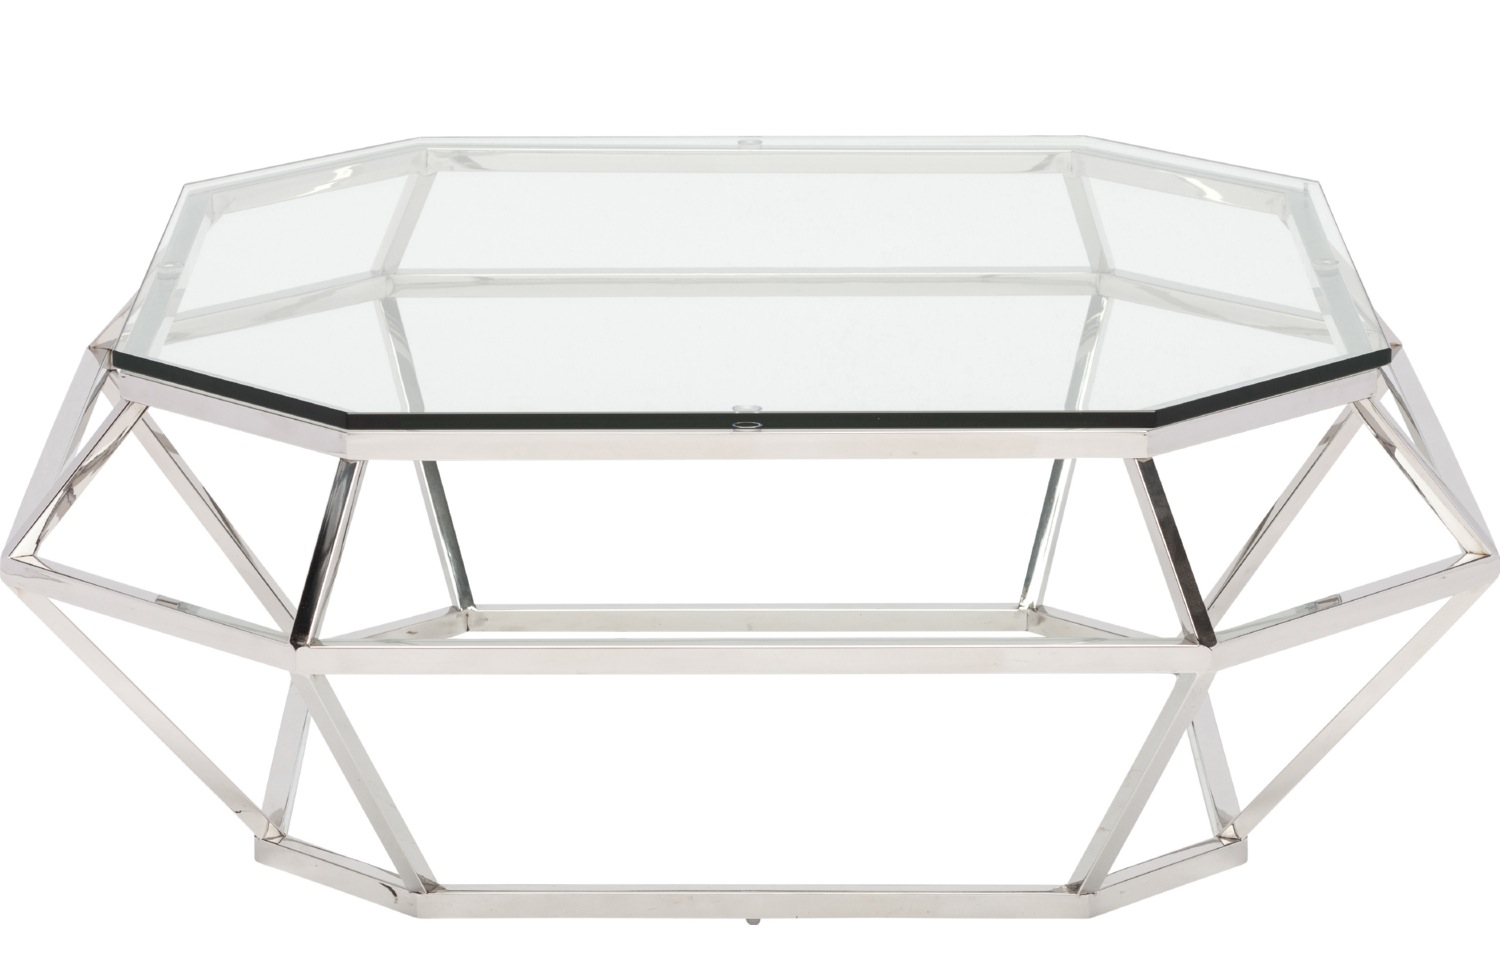 diamond-square-coffee-table-nuevo.jpg